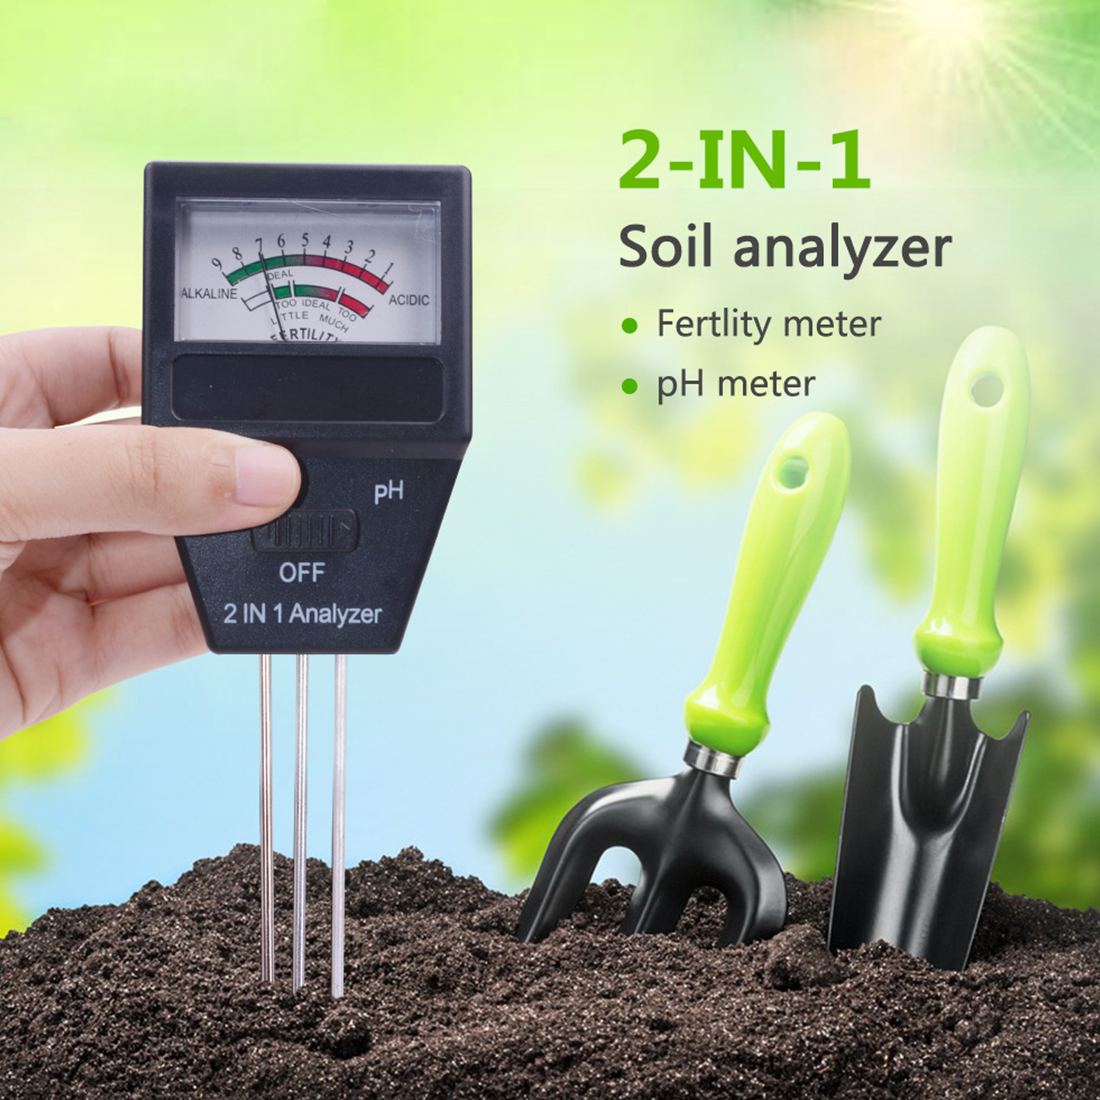 2 in 1 Soil PH Meter& Fertility Tester With 3 Probes Ideal Instrument For Gardening Gardening Tools 2 in 1 Soil PH Meter& Fertility Tester With 3 Probes Ideal Instrument For Gardening Gardening Tools